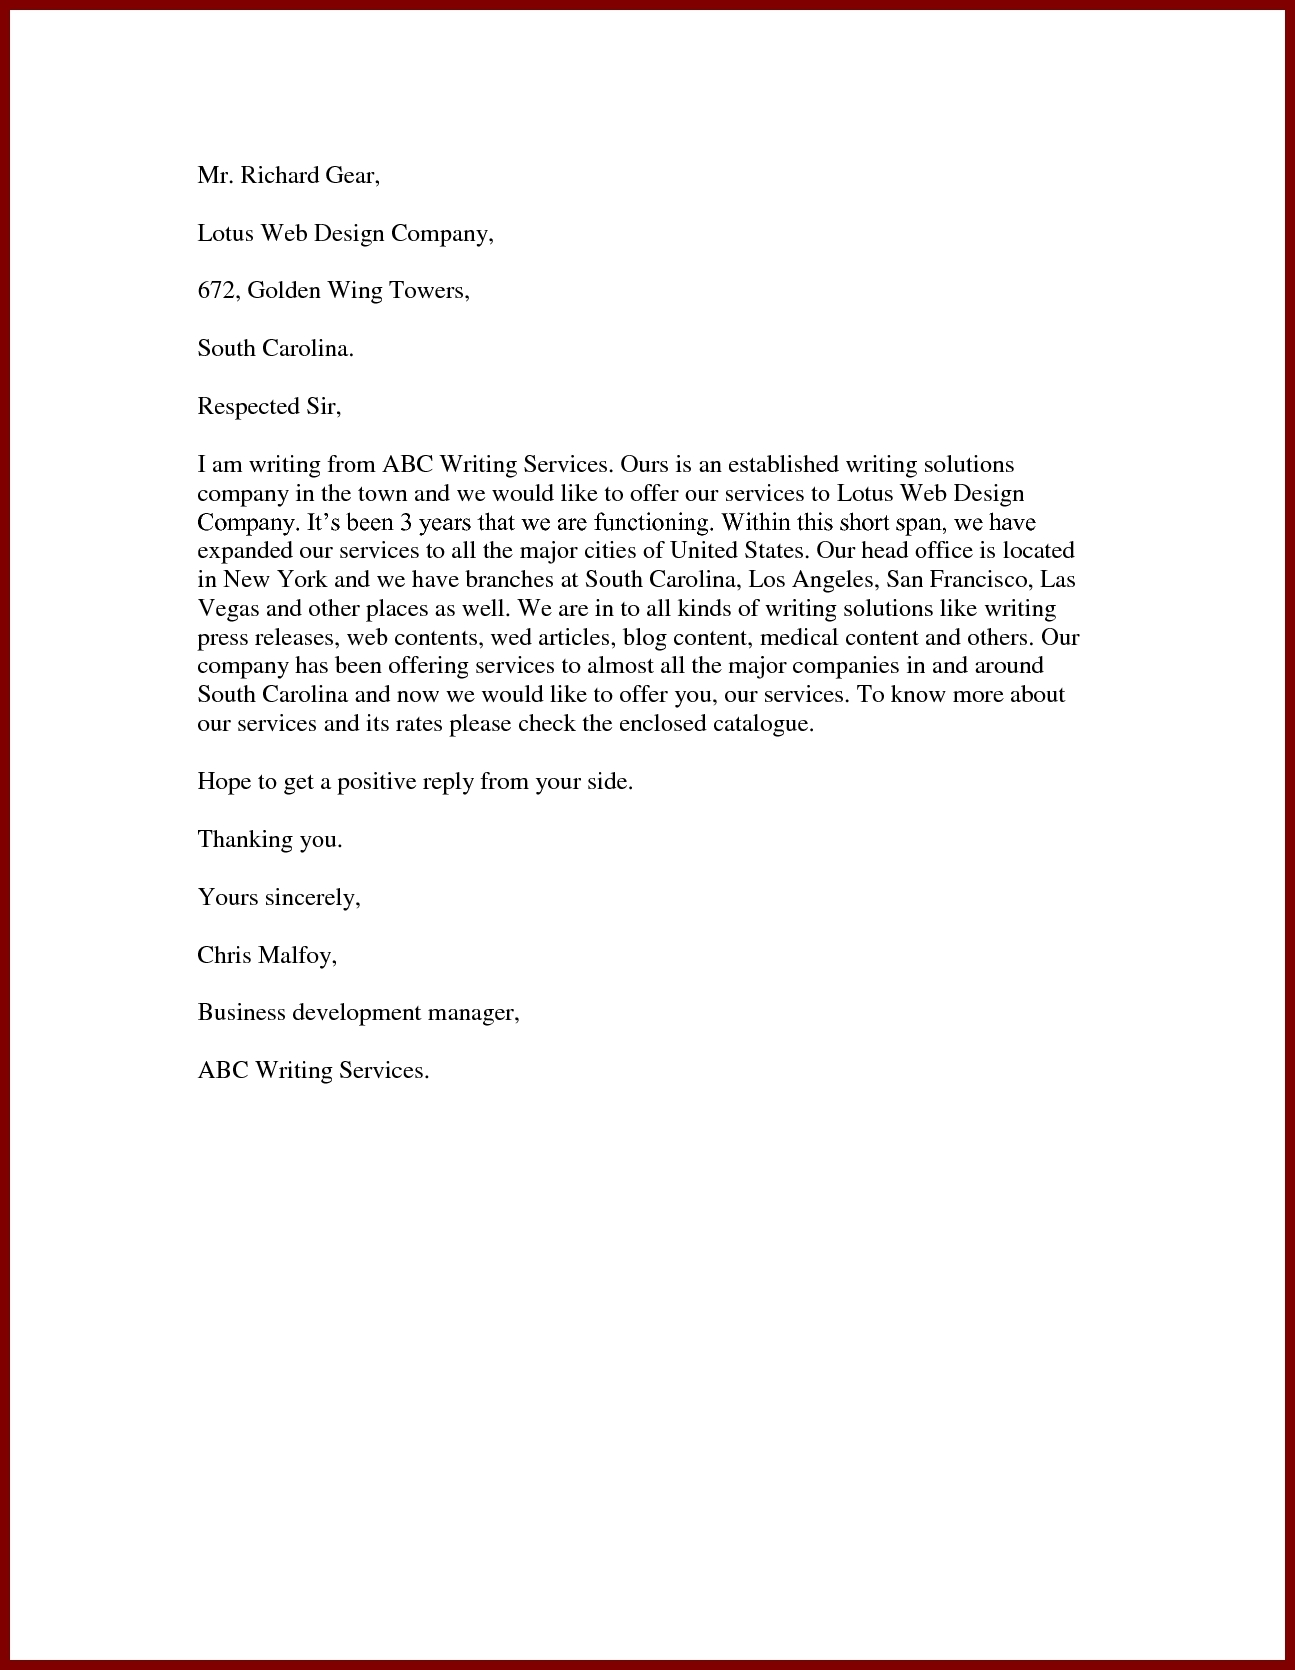 Sample Proposal Letter To Offer Services Best Template Design